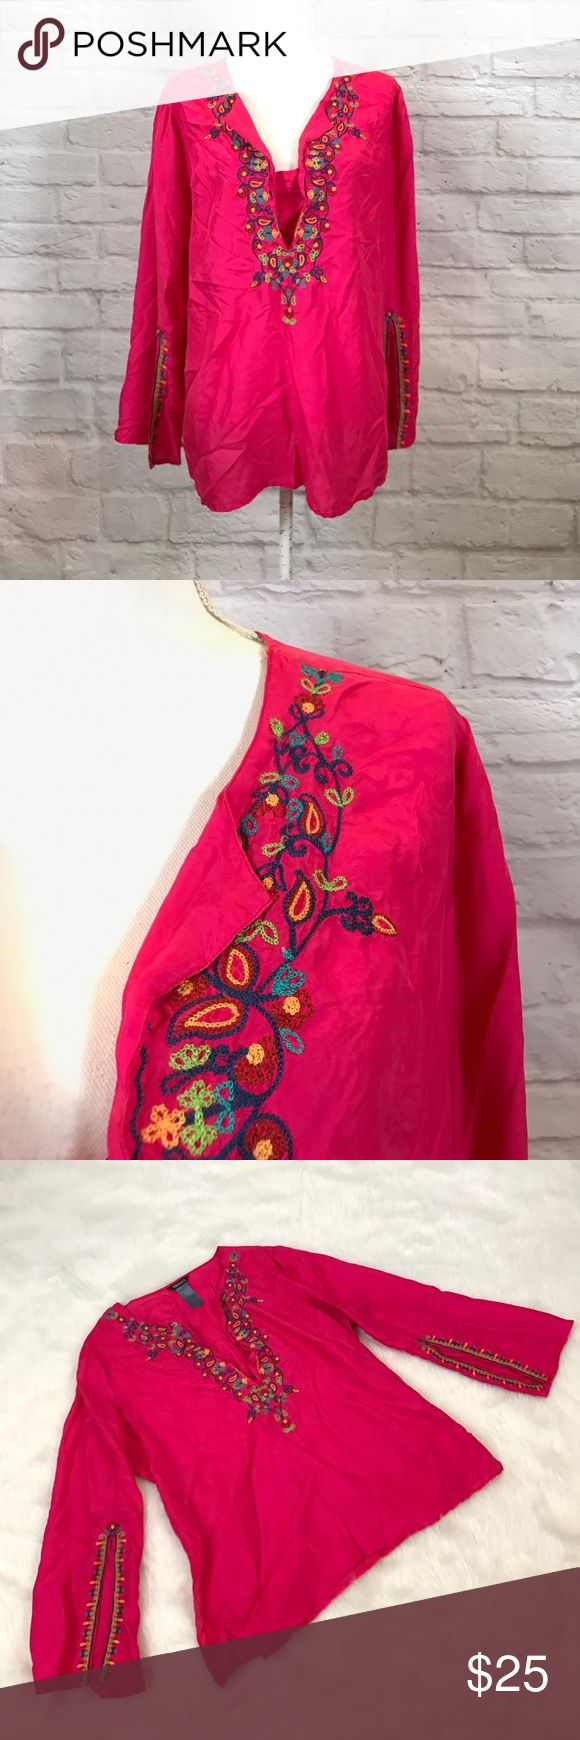 Beliza silk embroidered peasant festival blouse Gently used. Looks barely or never worn, 100% silk, length 28, chest 23 across pit to pit Beliza Tops Blouses